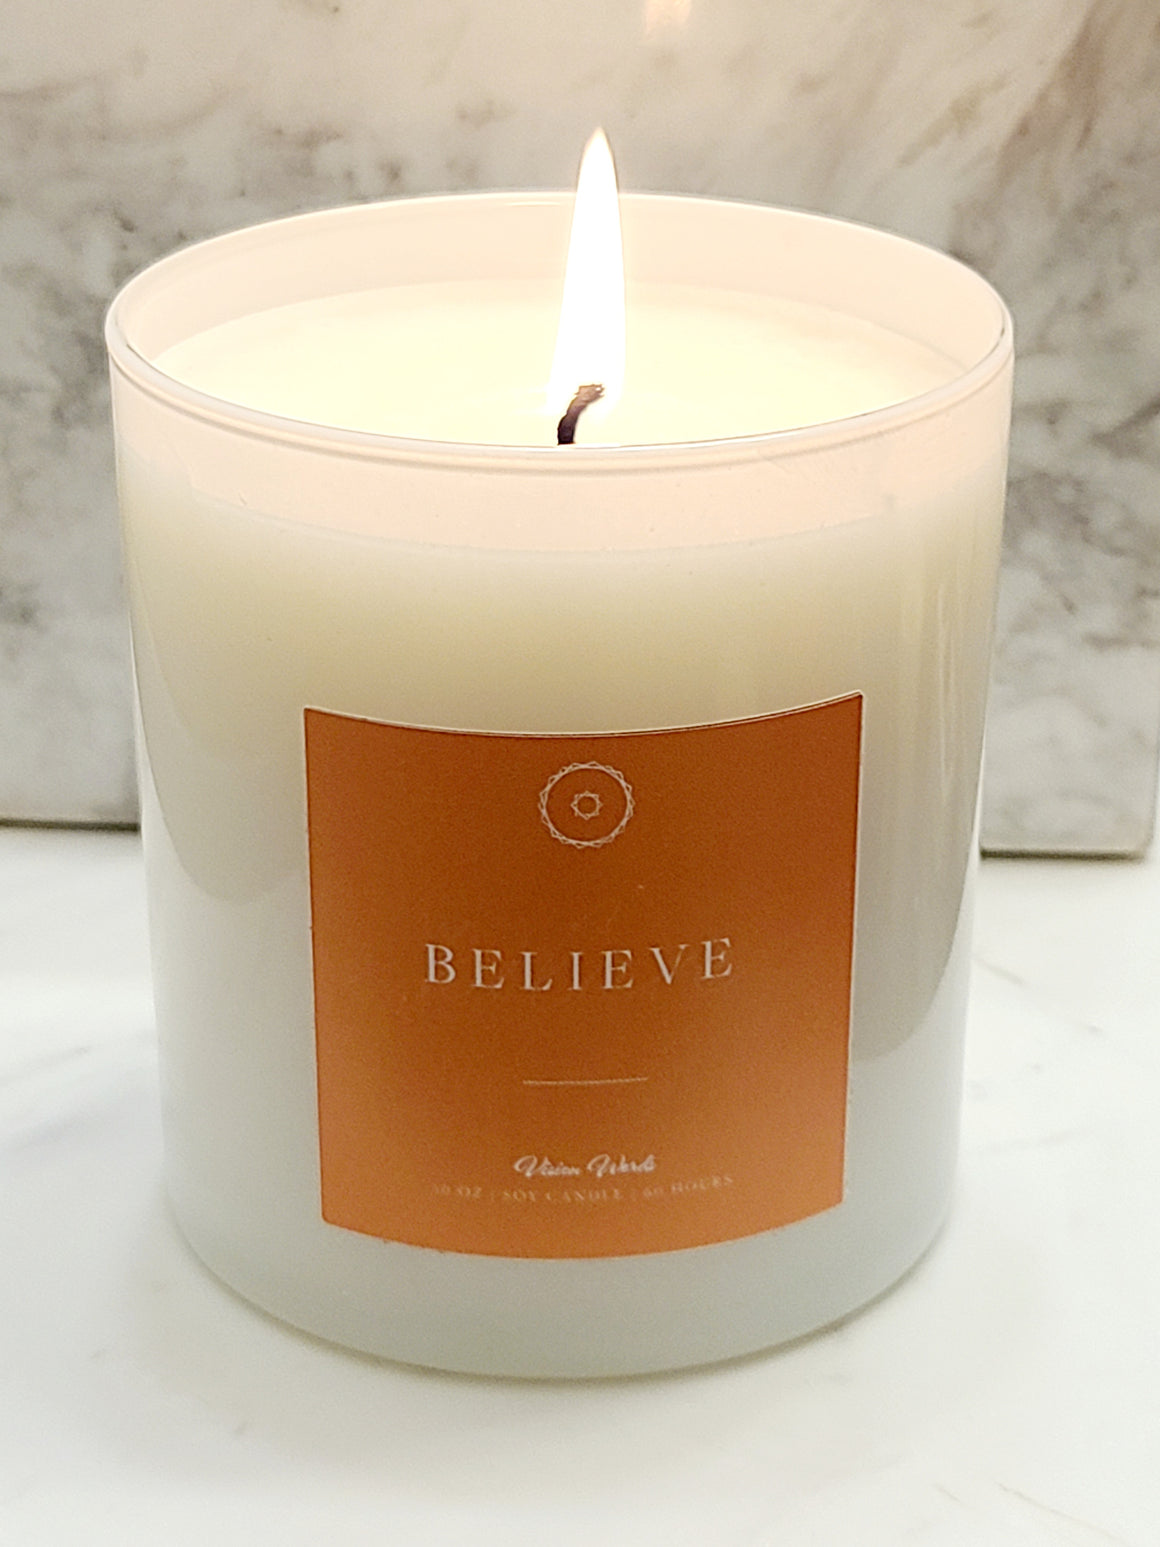 BELIEVE   10 oz Luxury Soy Candle with Vision Words